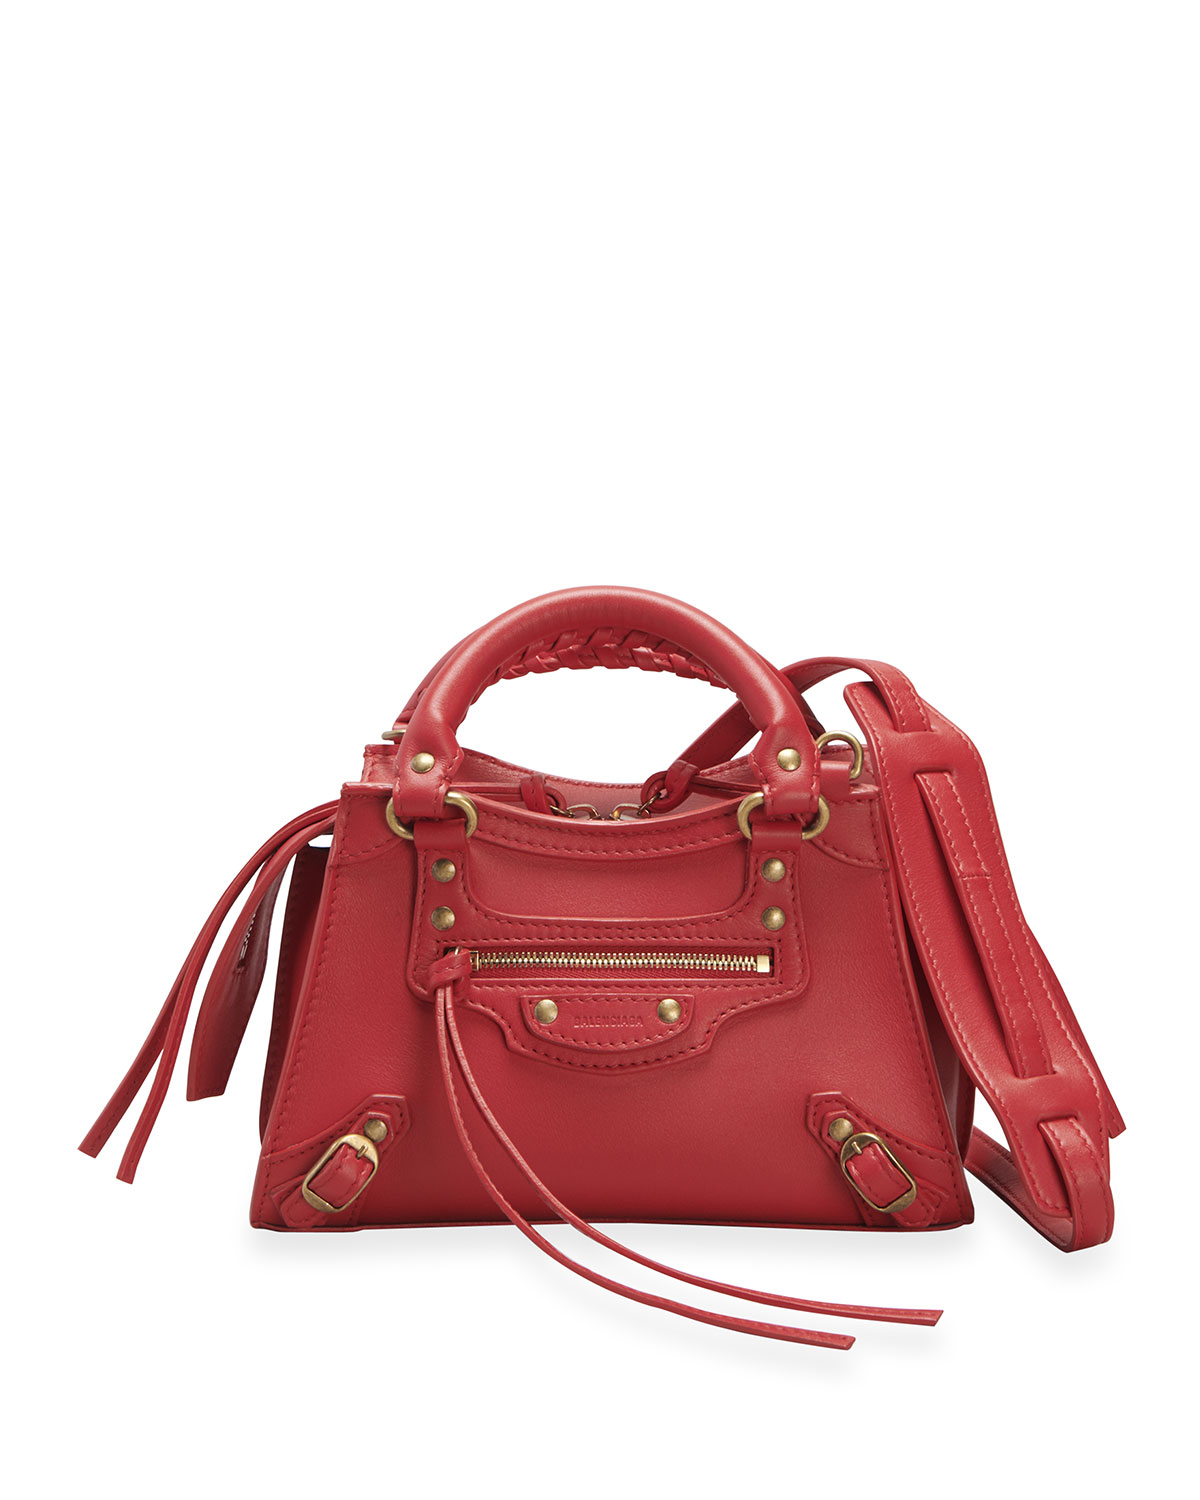 Balenciaga Neo Class City Mini Calfskin Satchel Bag